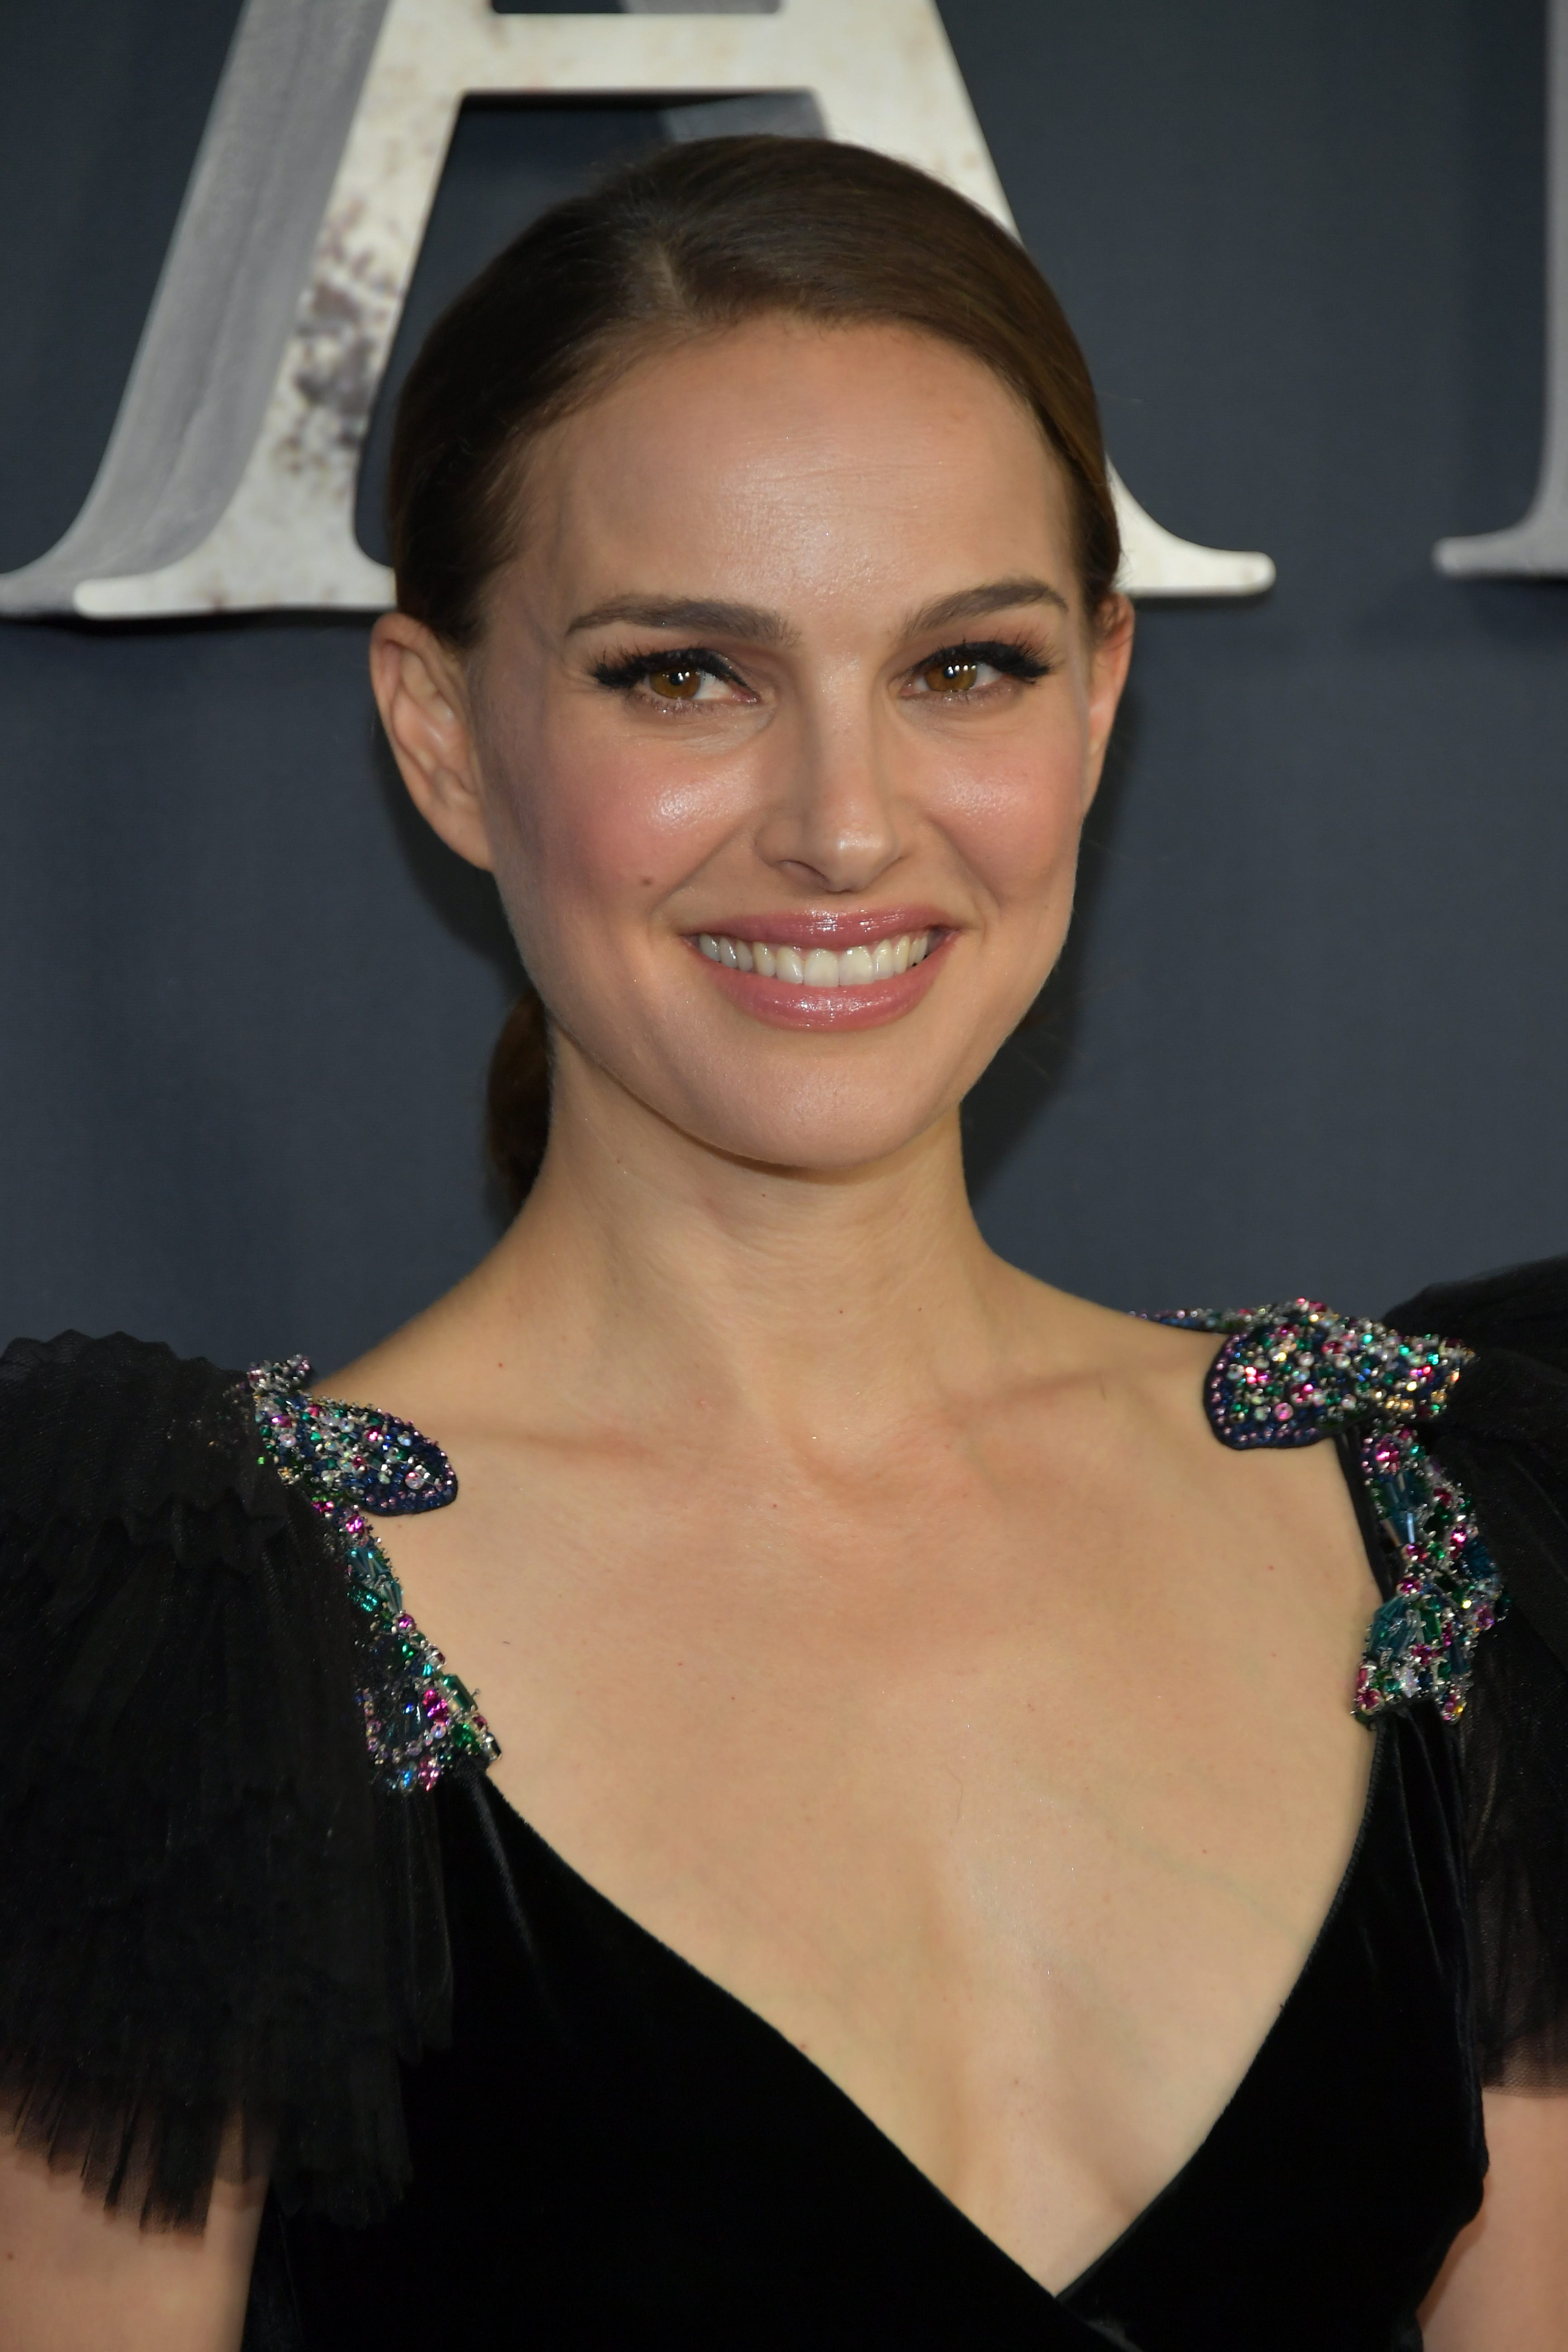 Natalie Portman is right to criticize Israel: A reader explains